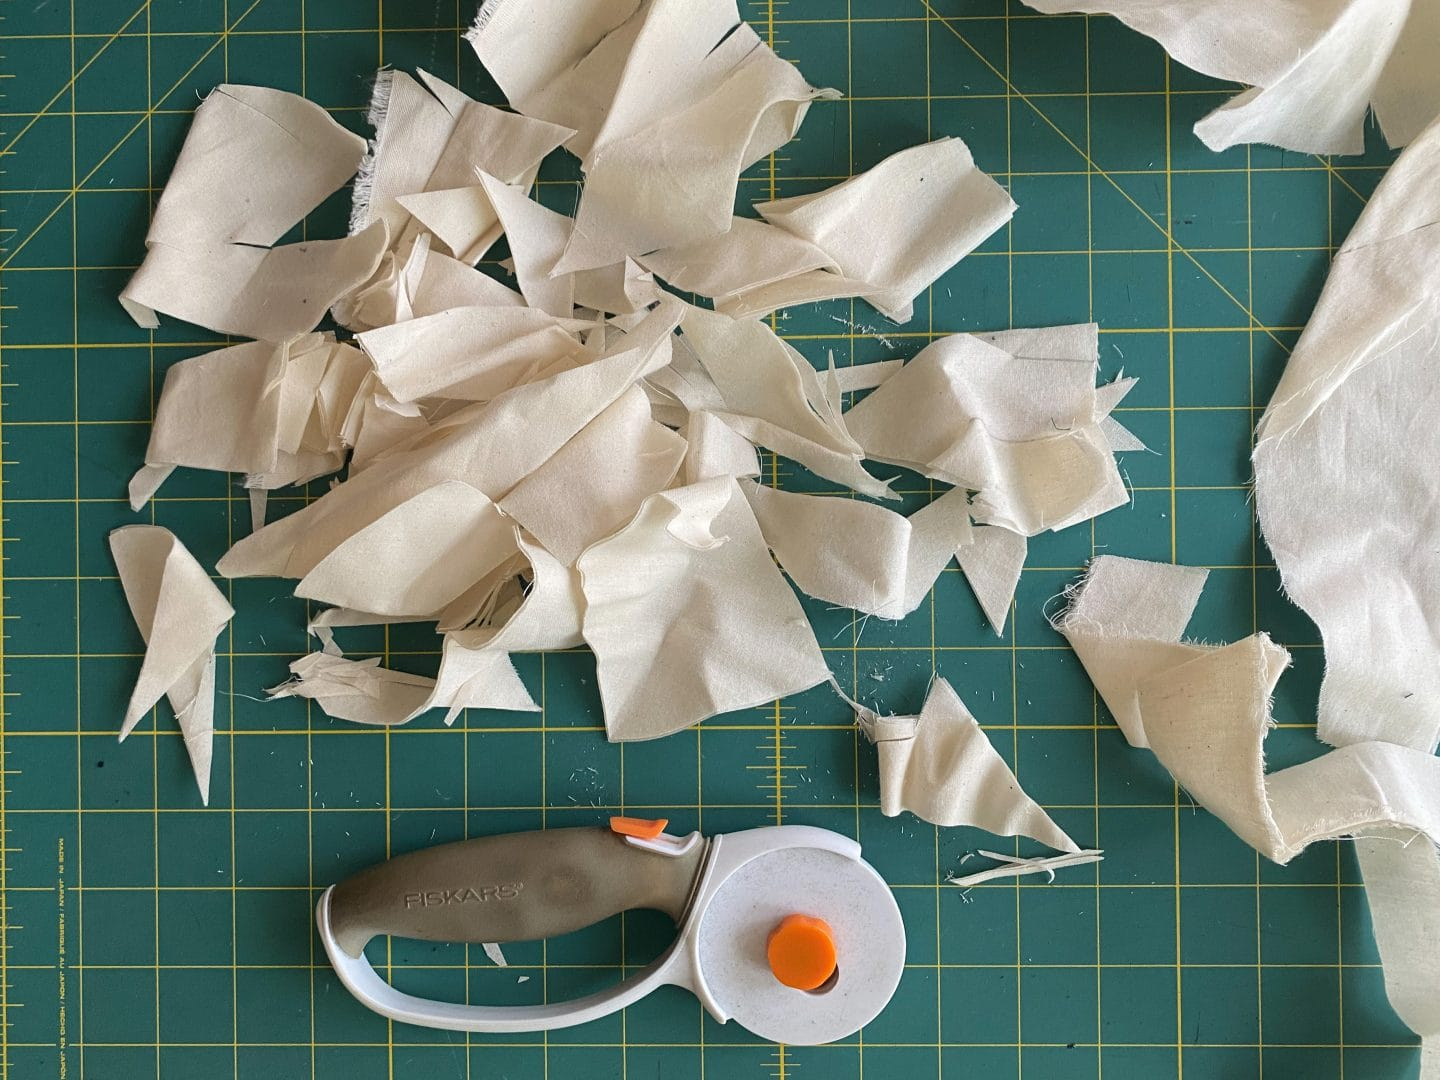 Image of scraps of muslin next to a rotary cutter on top of a green cutting mat